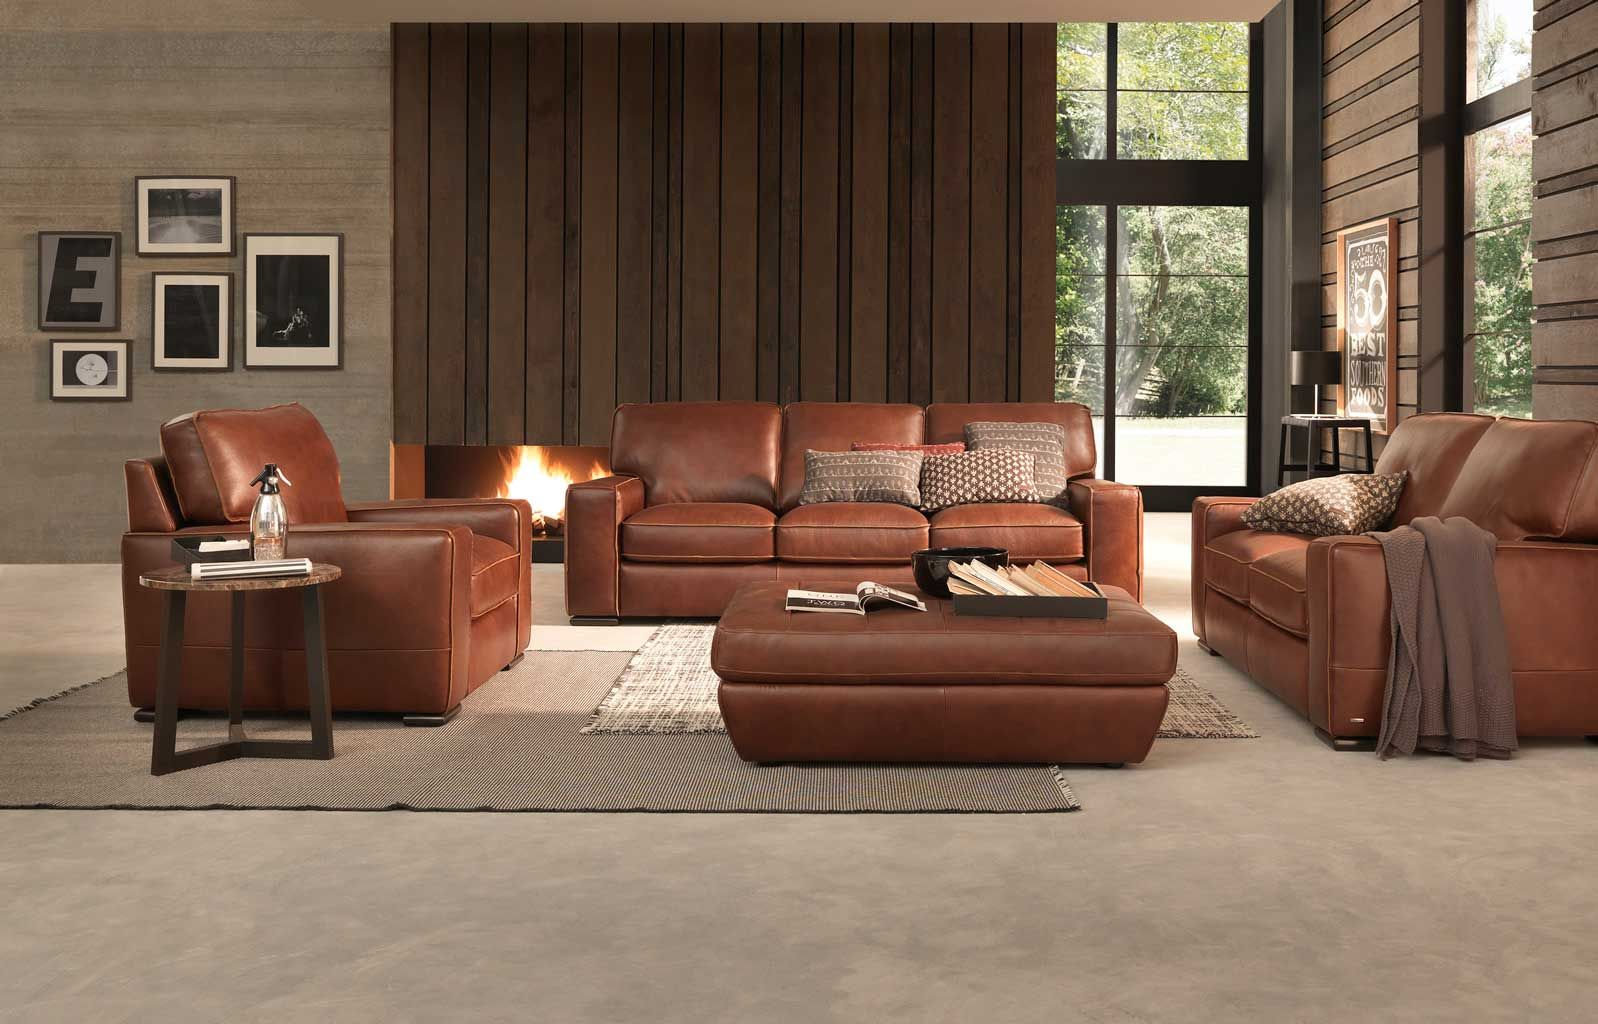 Natuzzi Editions Leather Sofa Bed Brown Leather Sofa Bed for sizing 1598 X 1024